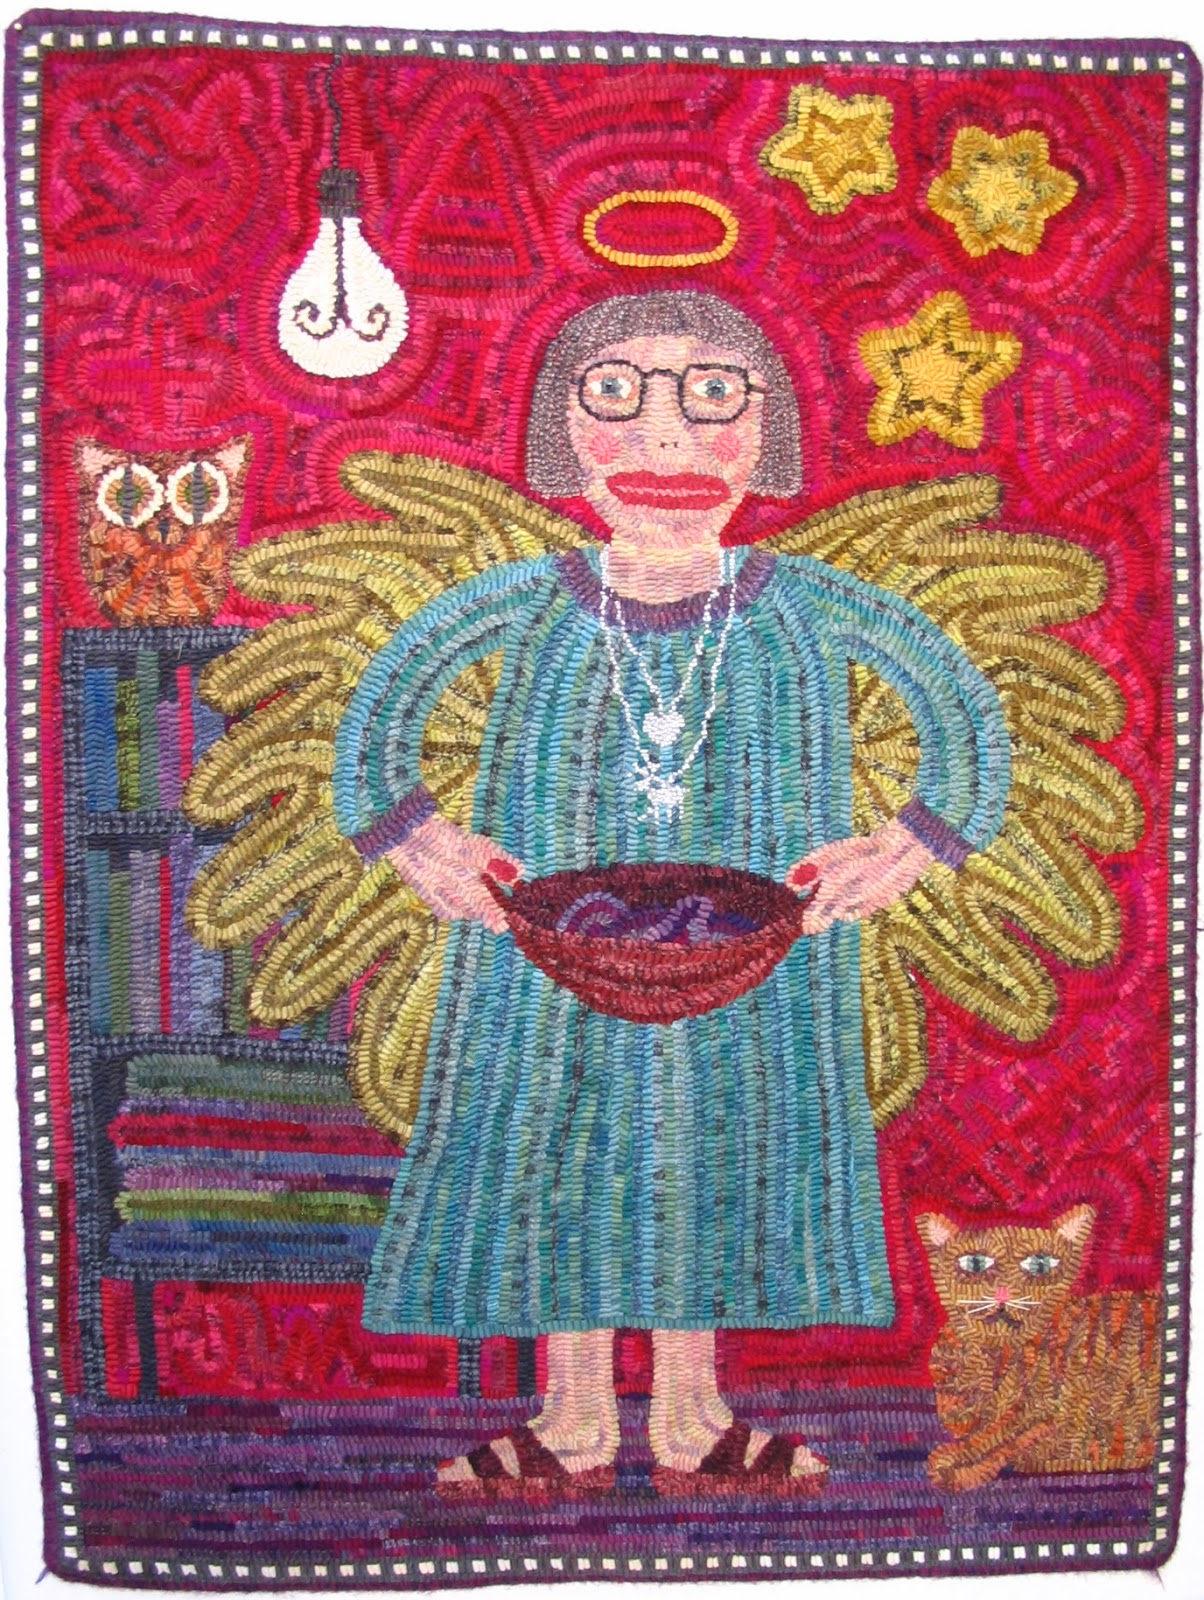 Fish Eye Rugs: another angel gets her wings...